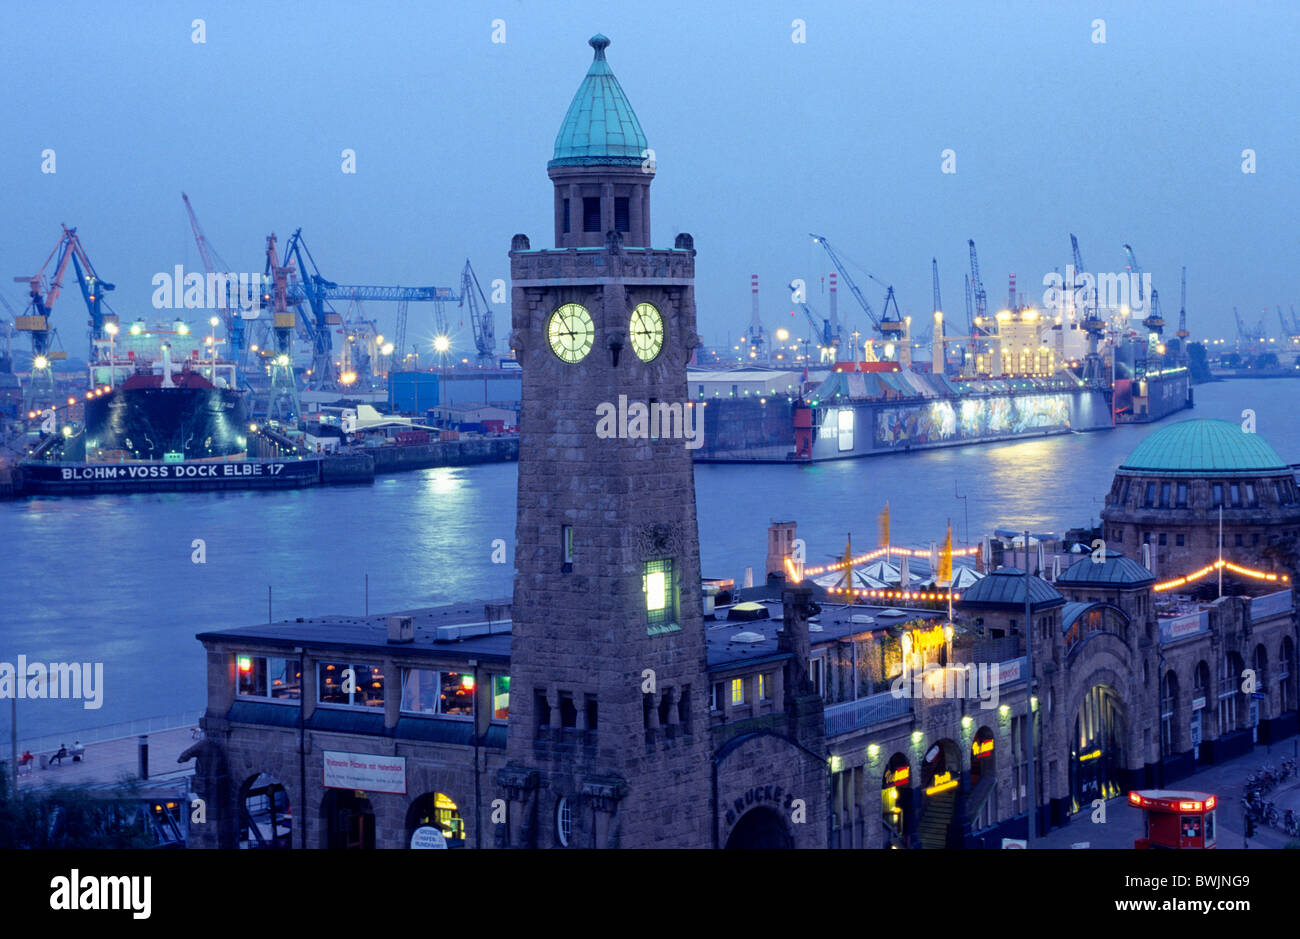 Europe, Germany, hanseatic city of Hamburg, port of Hamburg, Landungsbruecken (Jetties) - Stock Image